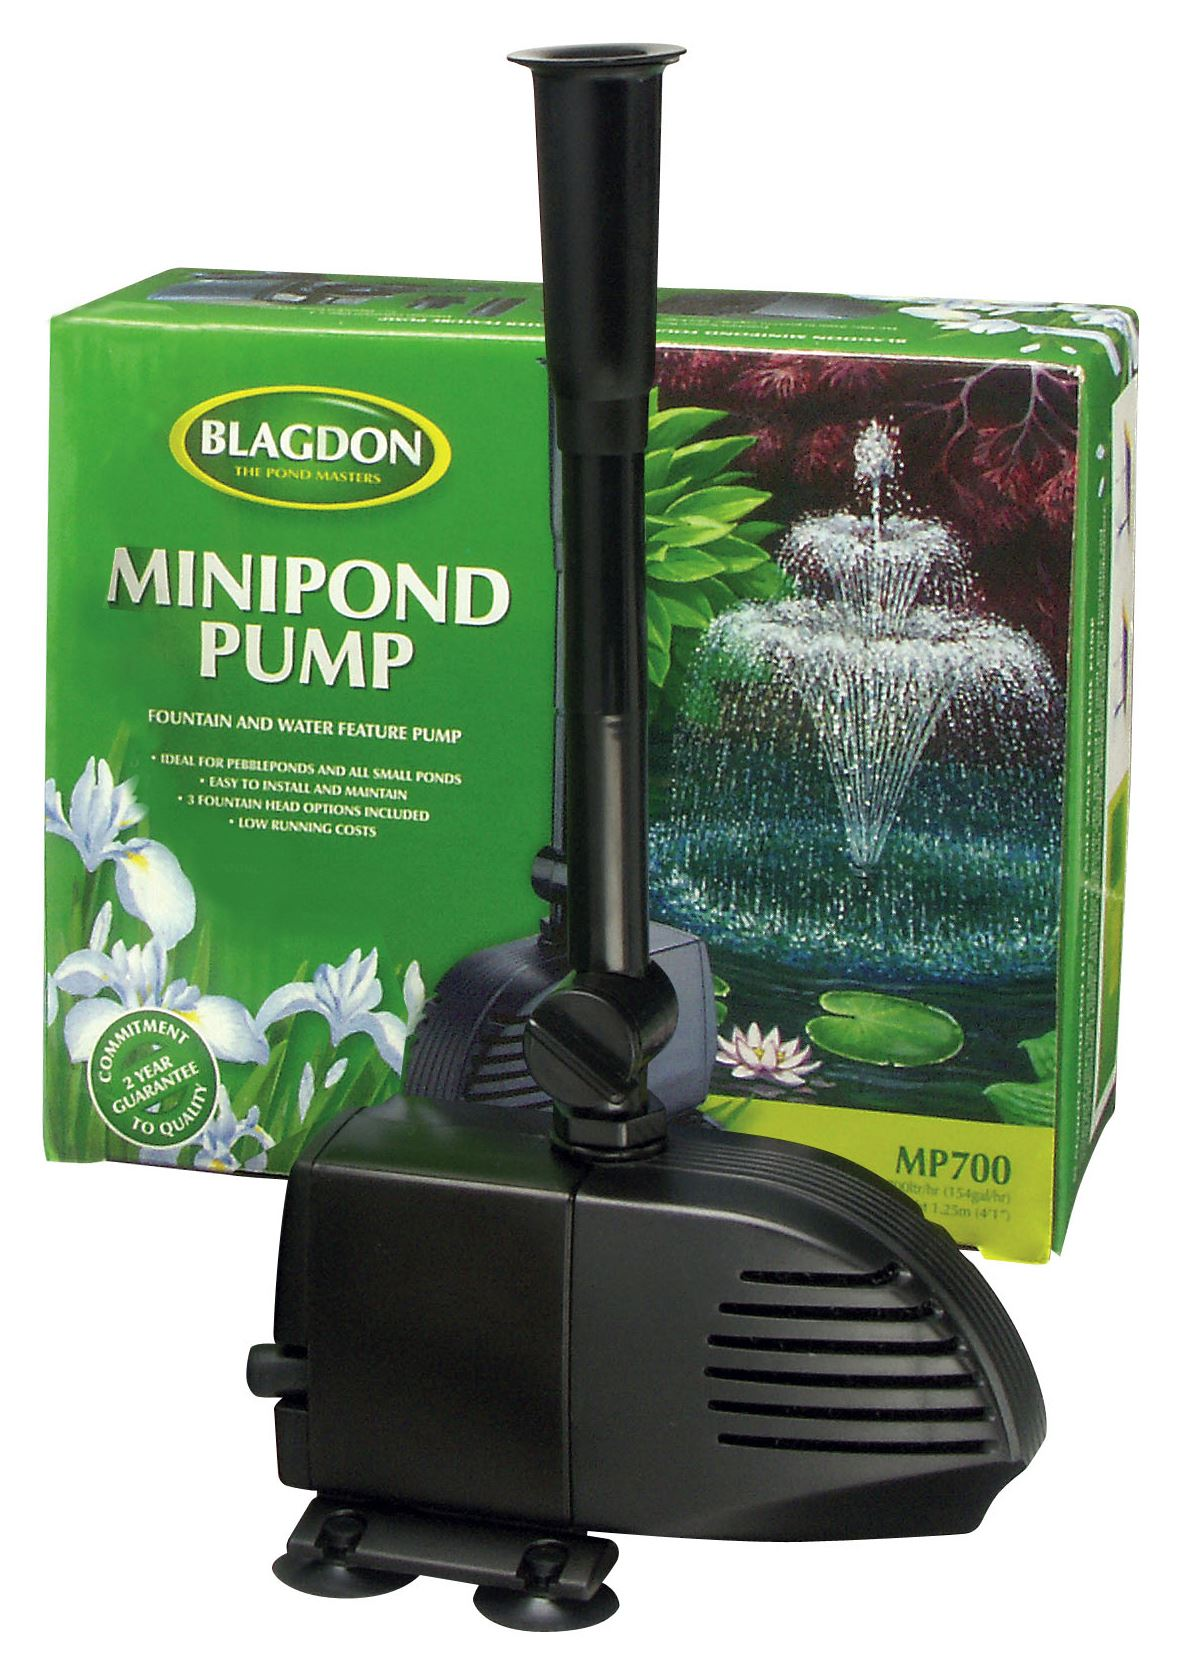 Blagdon mini pond koi fish pump for fountains water for Koi fish pond water pump